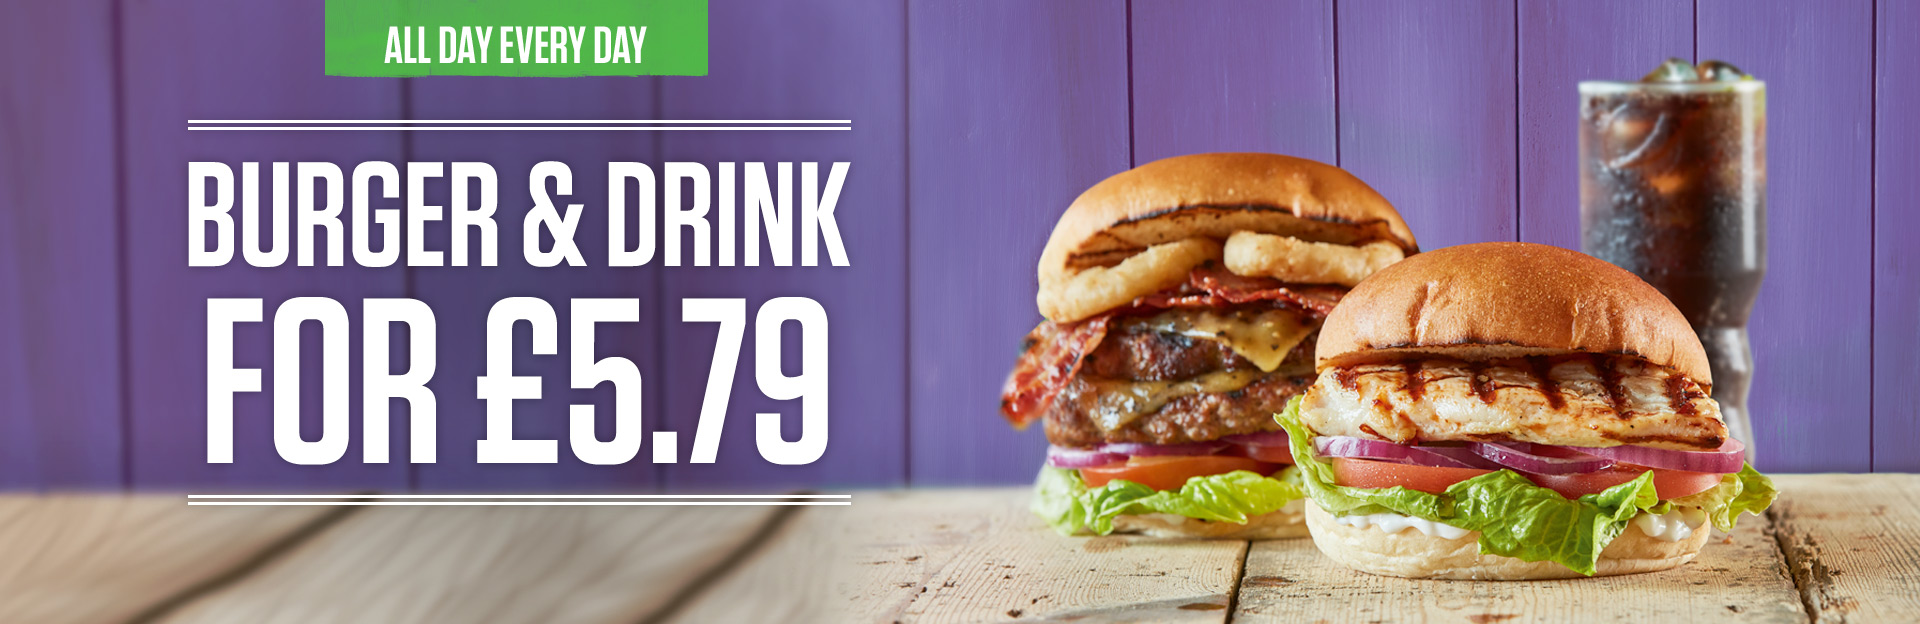 Burger and Drink Deal at The Two Brothers